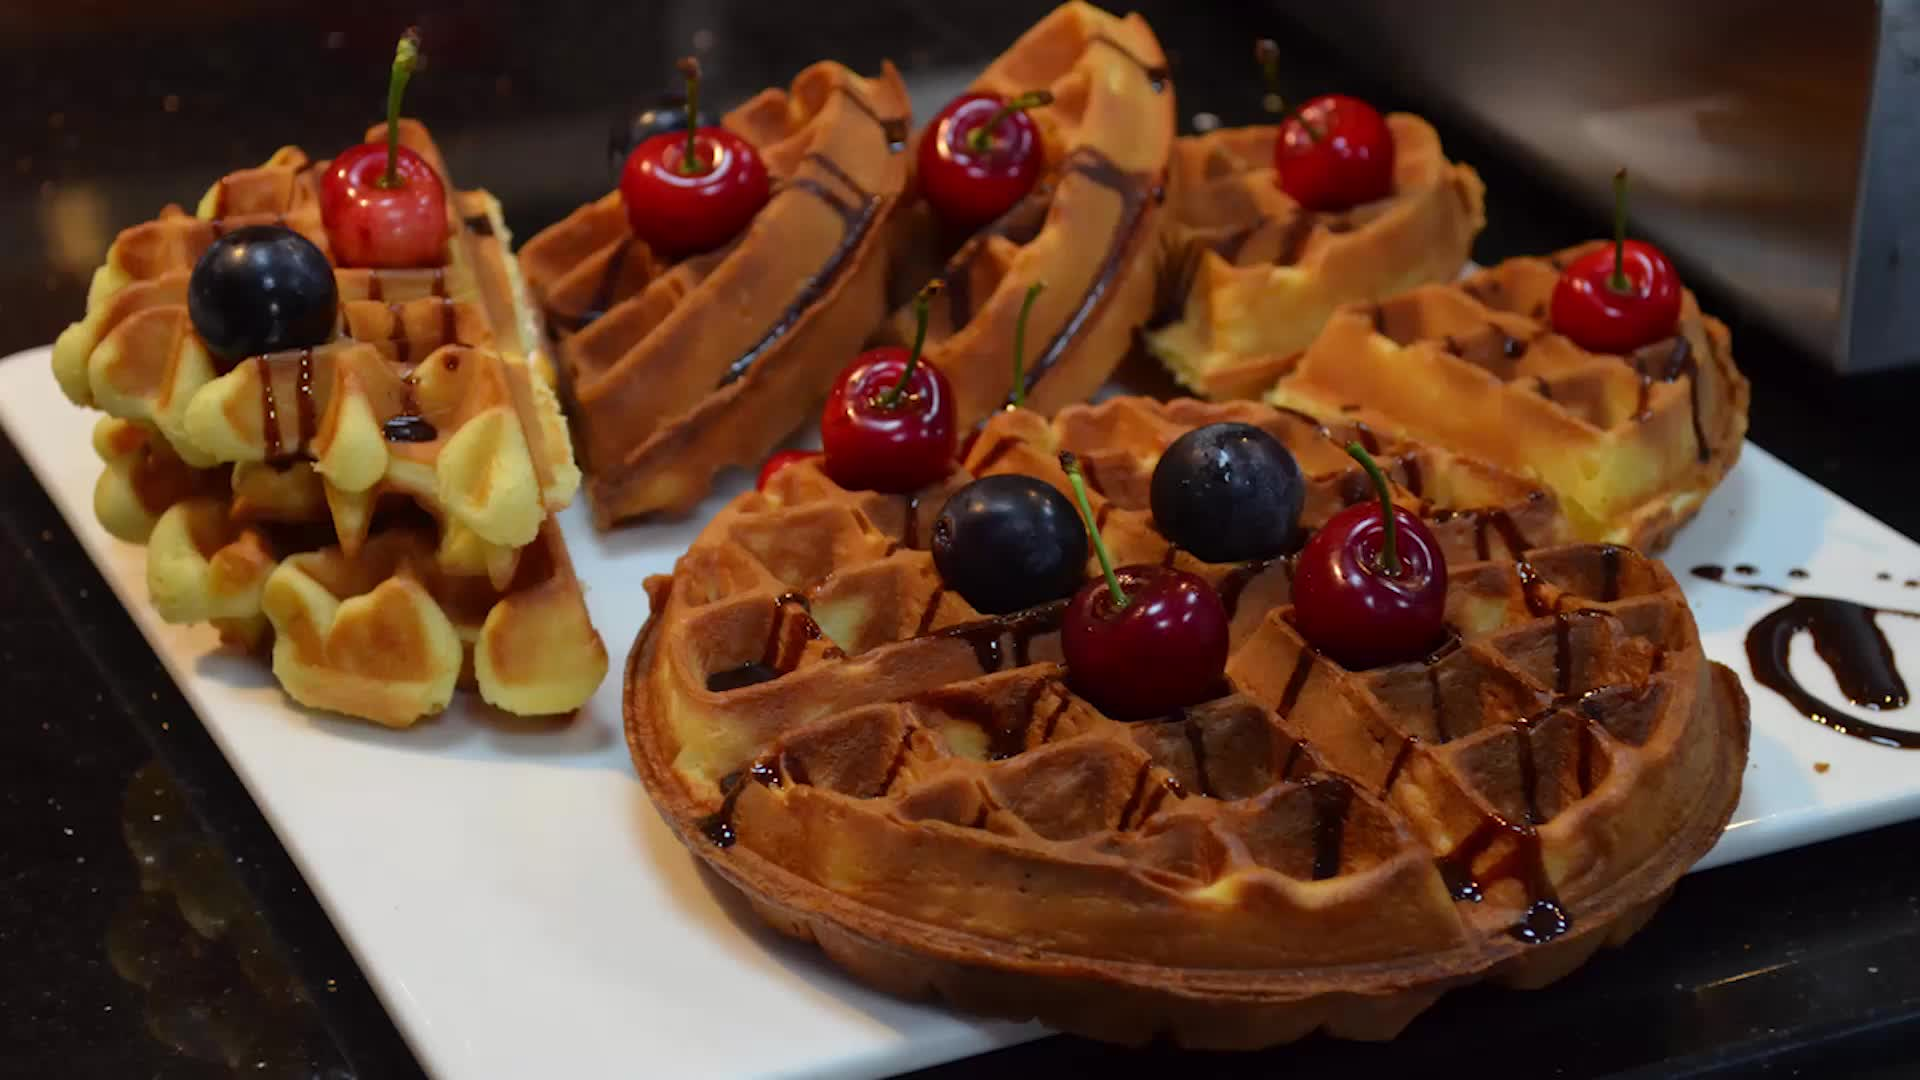 Hotel Waffle Maker Commerciale Rotante Waffle Maker Industrial Rotary Macchina Per Cialde Elettrico